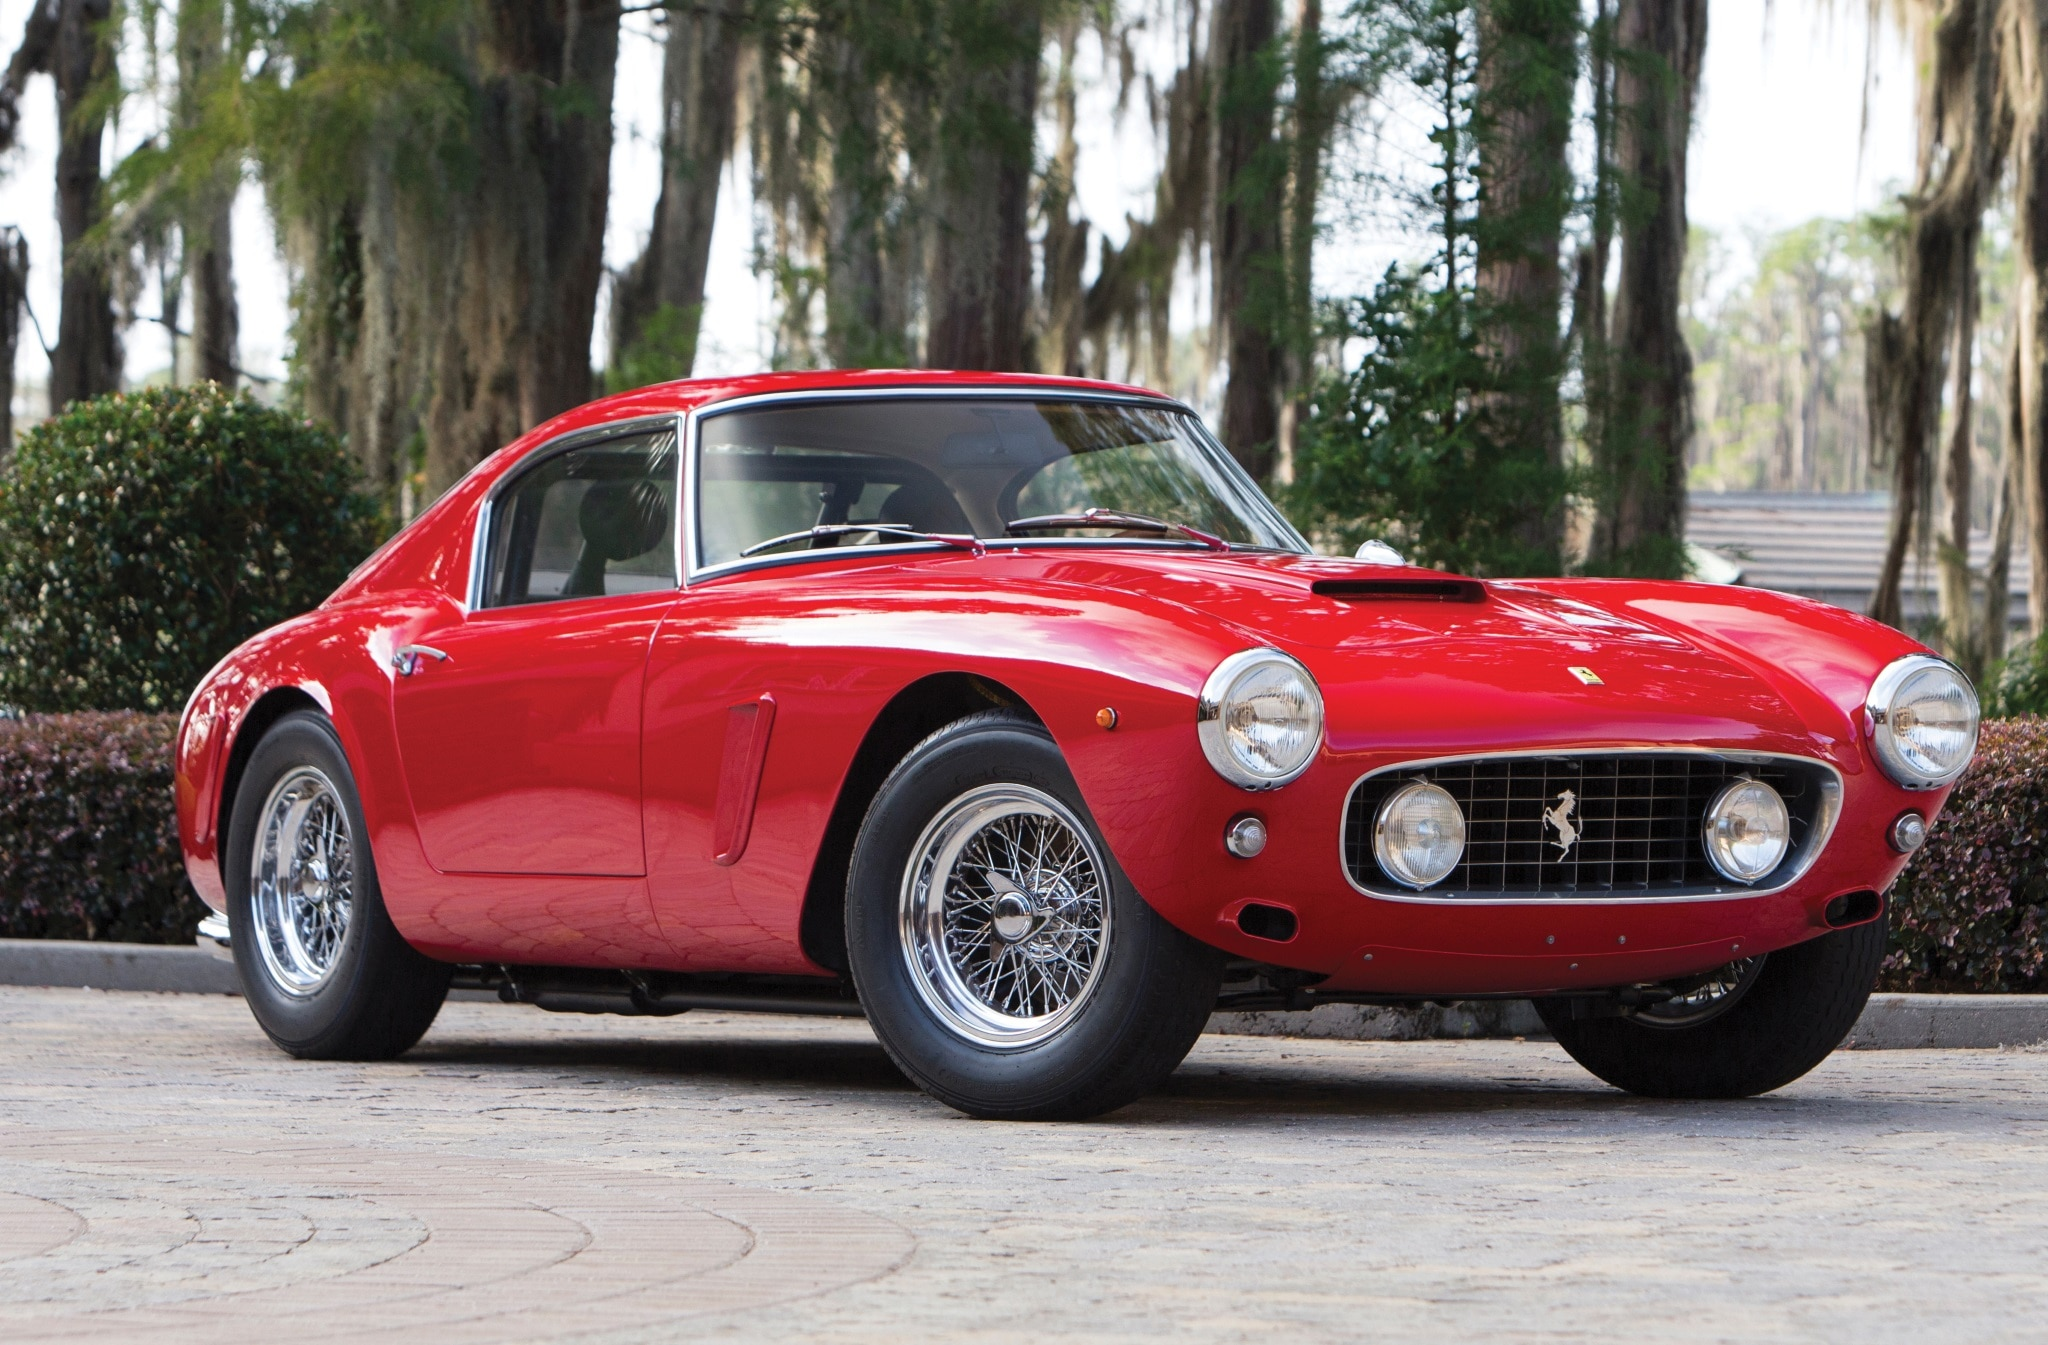 1960 Ferrari 250 Gt Swb Alloy Competizione Joins Rm Sotheby S